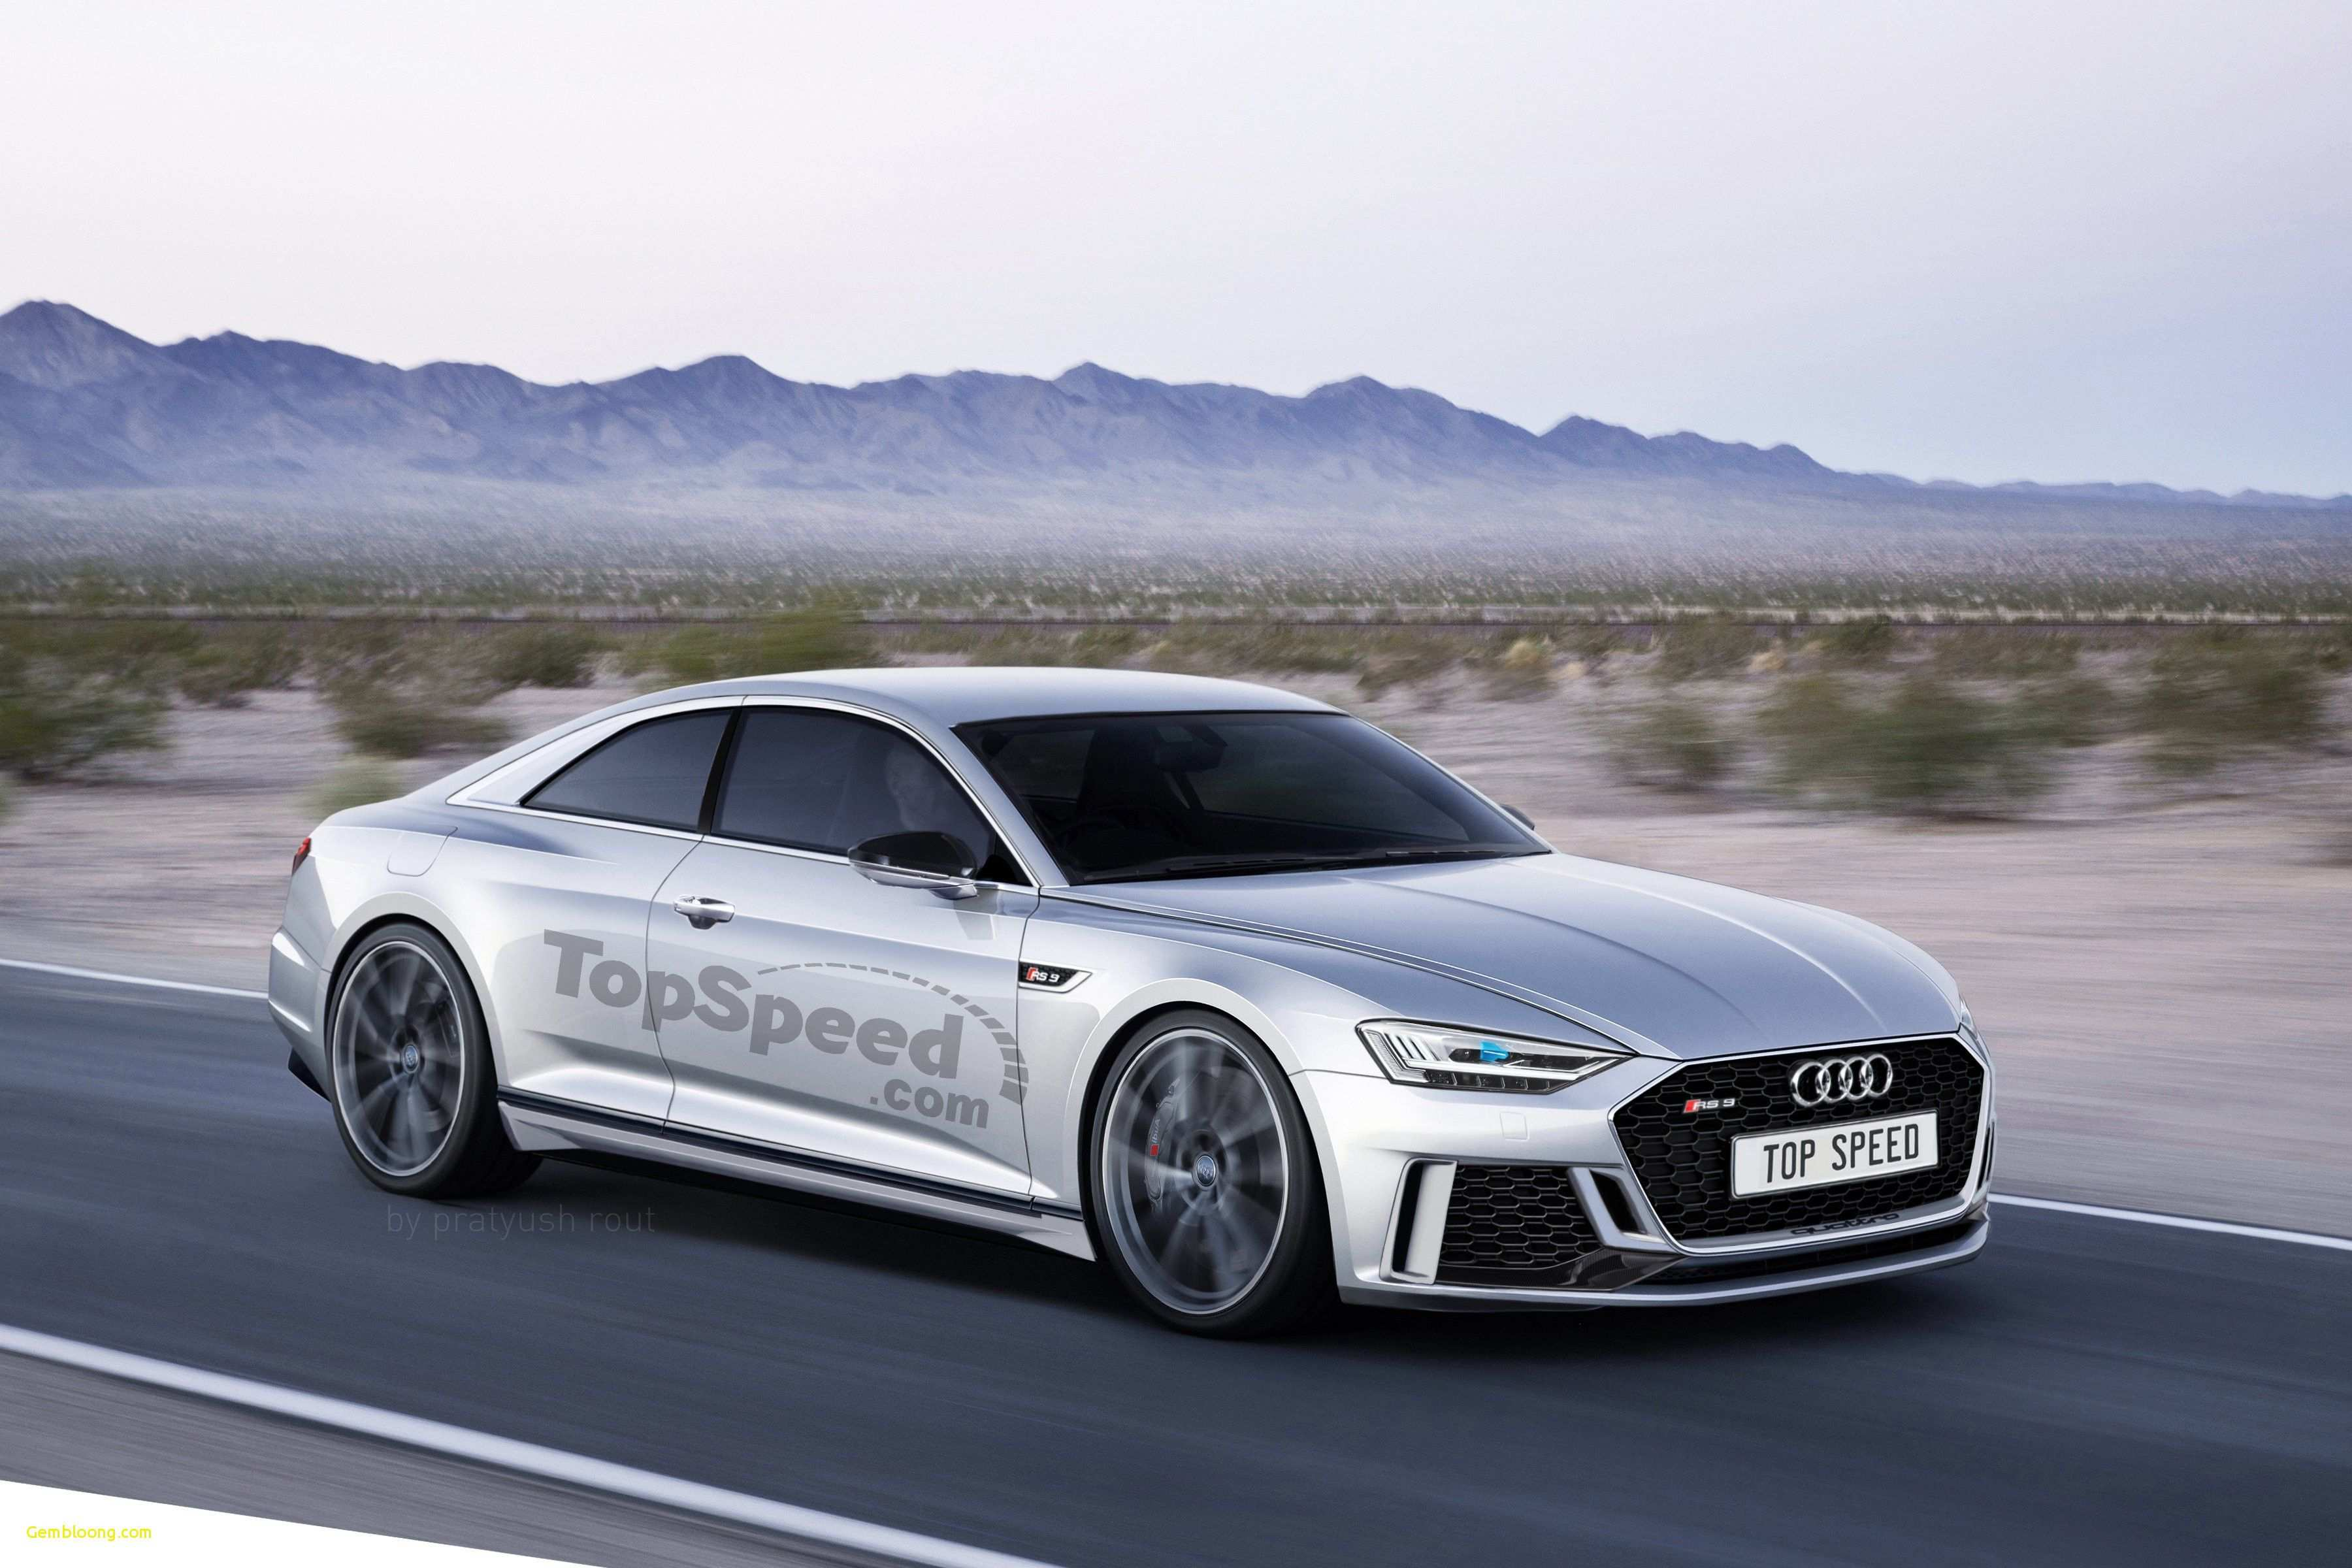 65 The Best 2020 Audi Rs5 Price